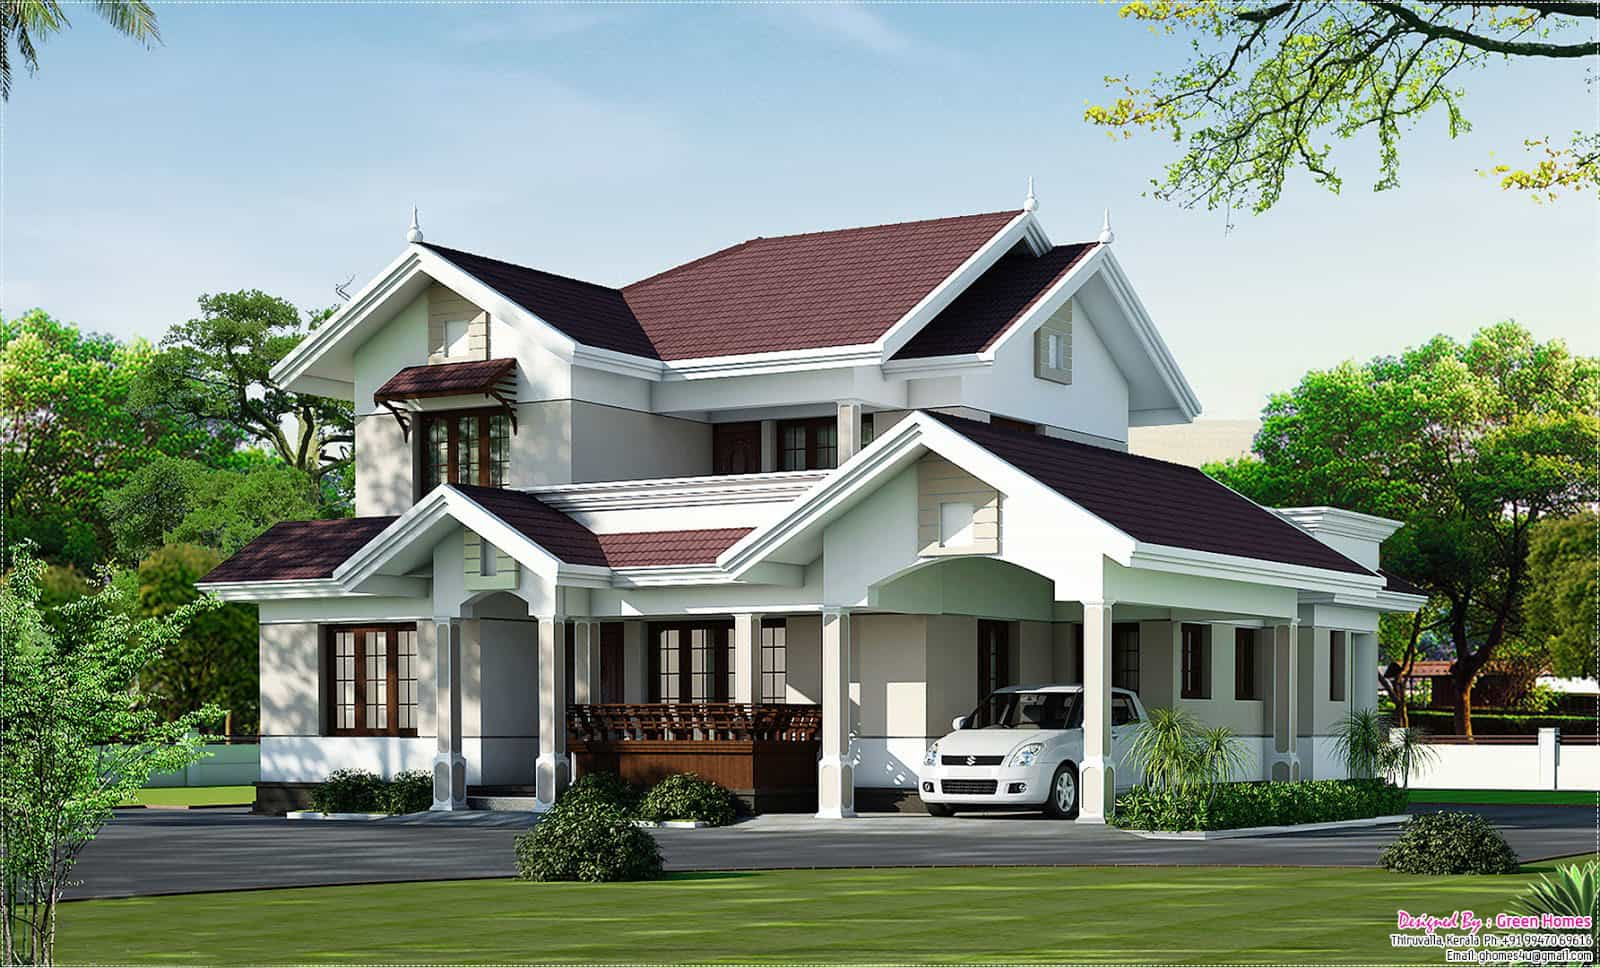 House design mauritius - House Designs And Plans In Mauritius